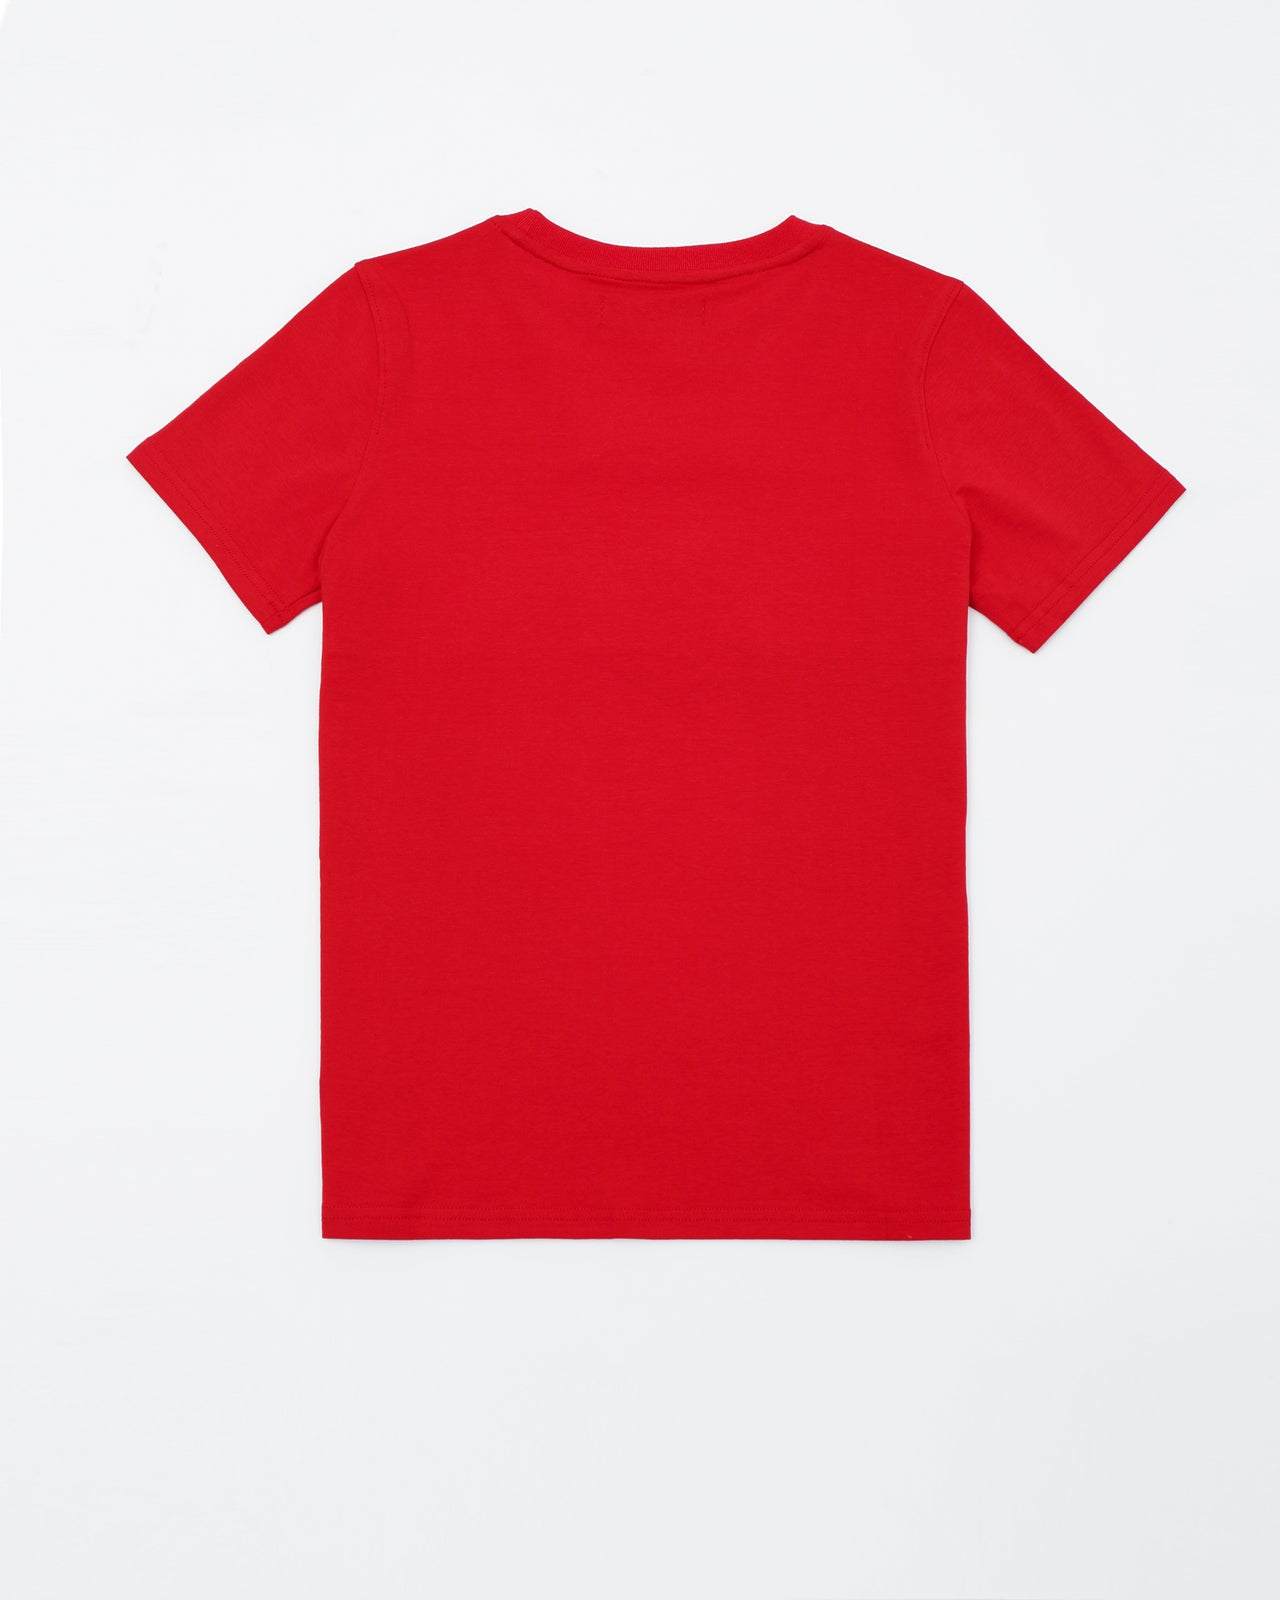 B Pyrmaid Kids Tee - Color: Red